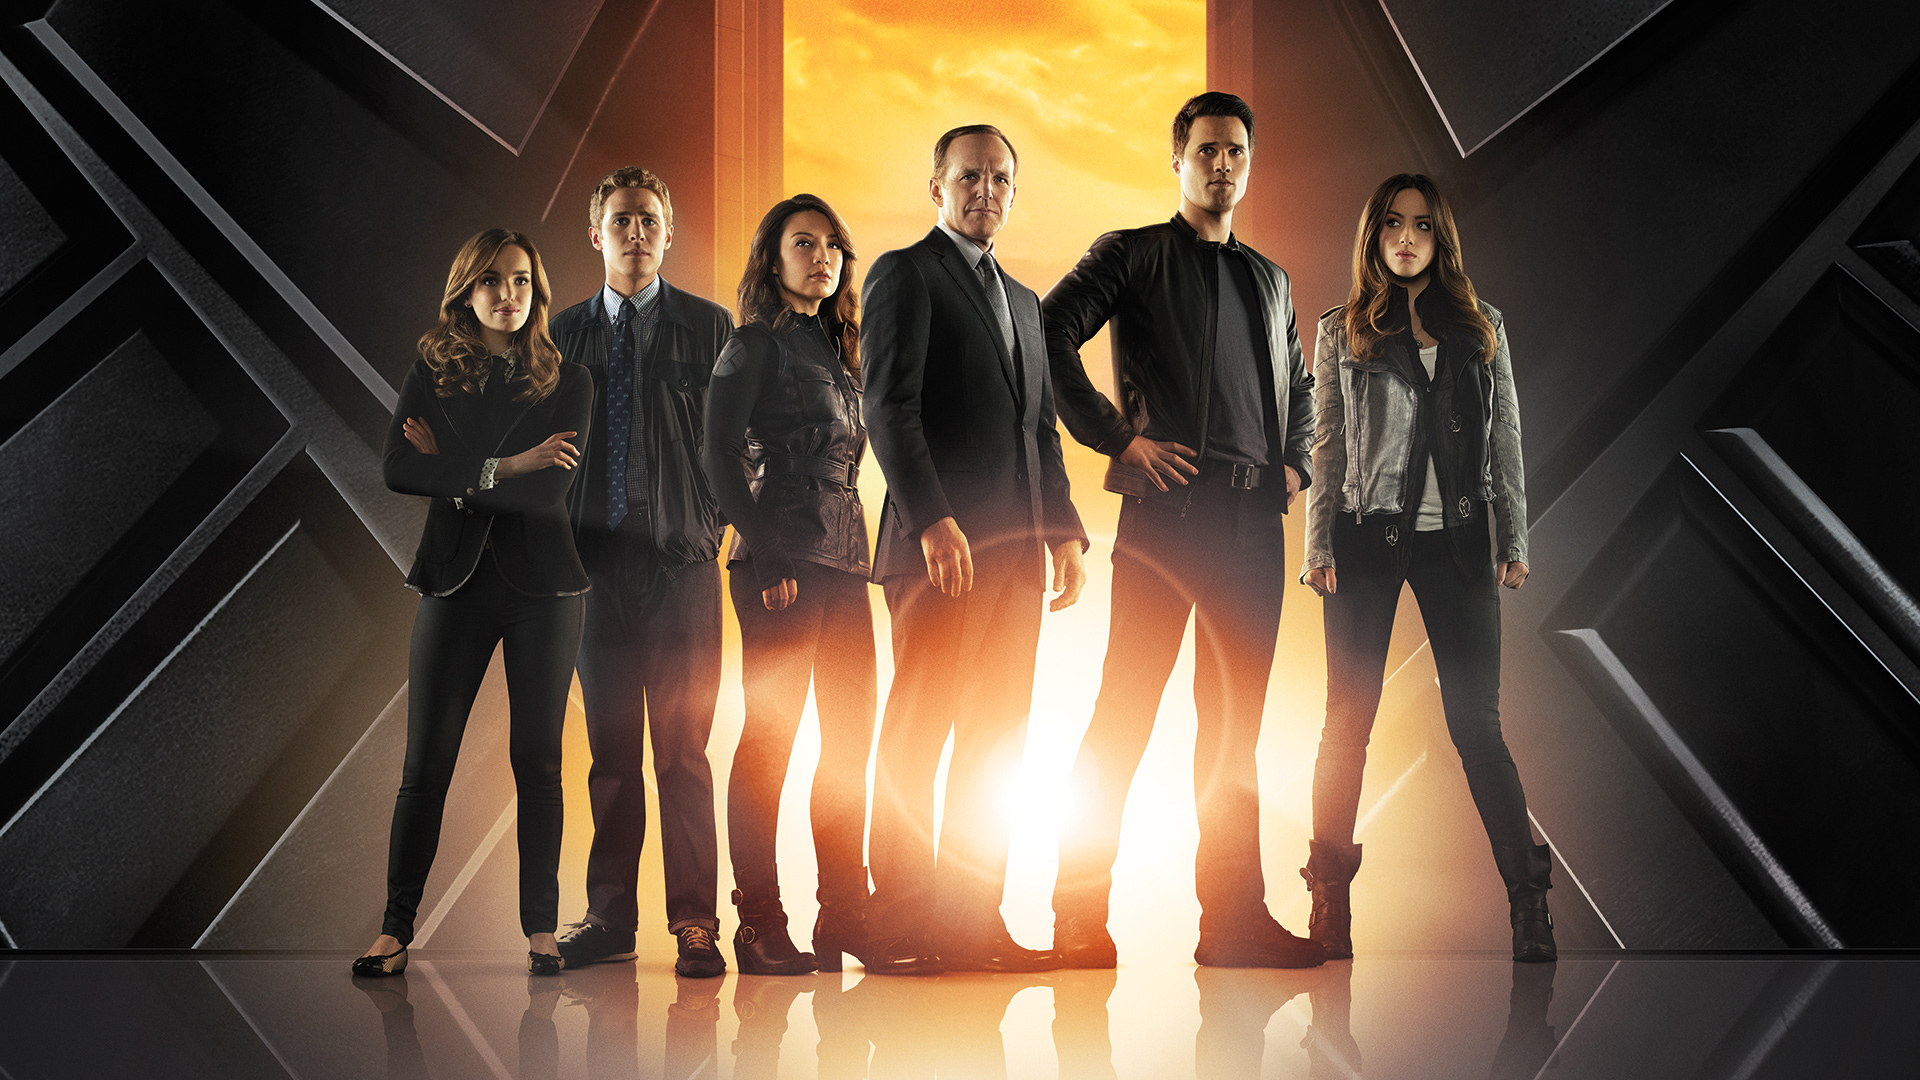 Agents-of-SHIELD-poster-with-the-main-cast